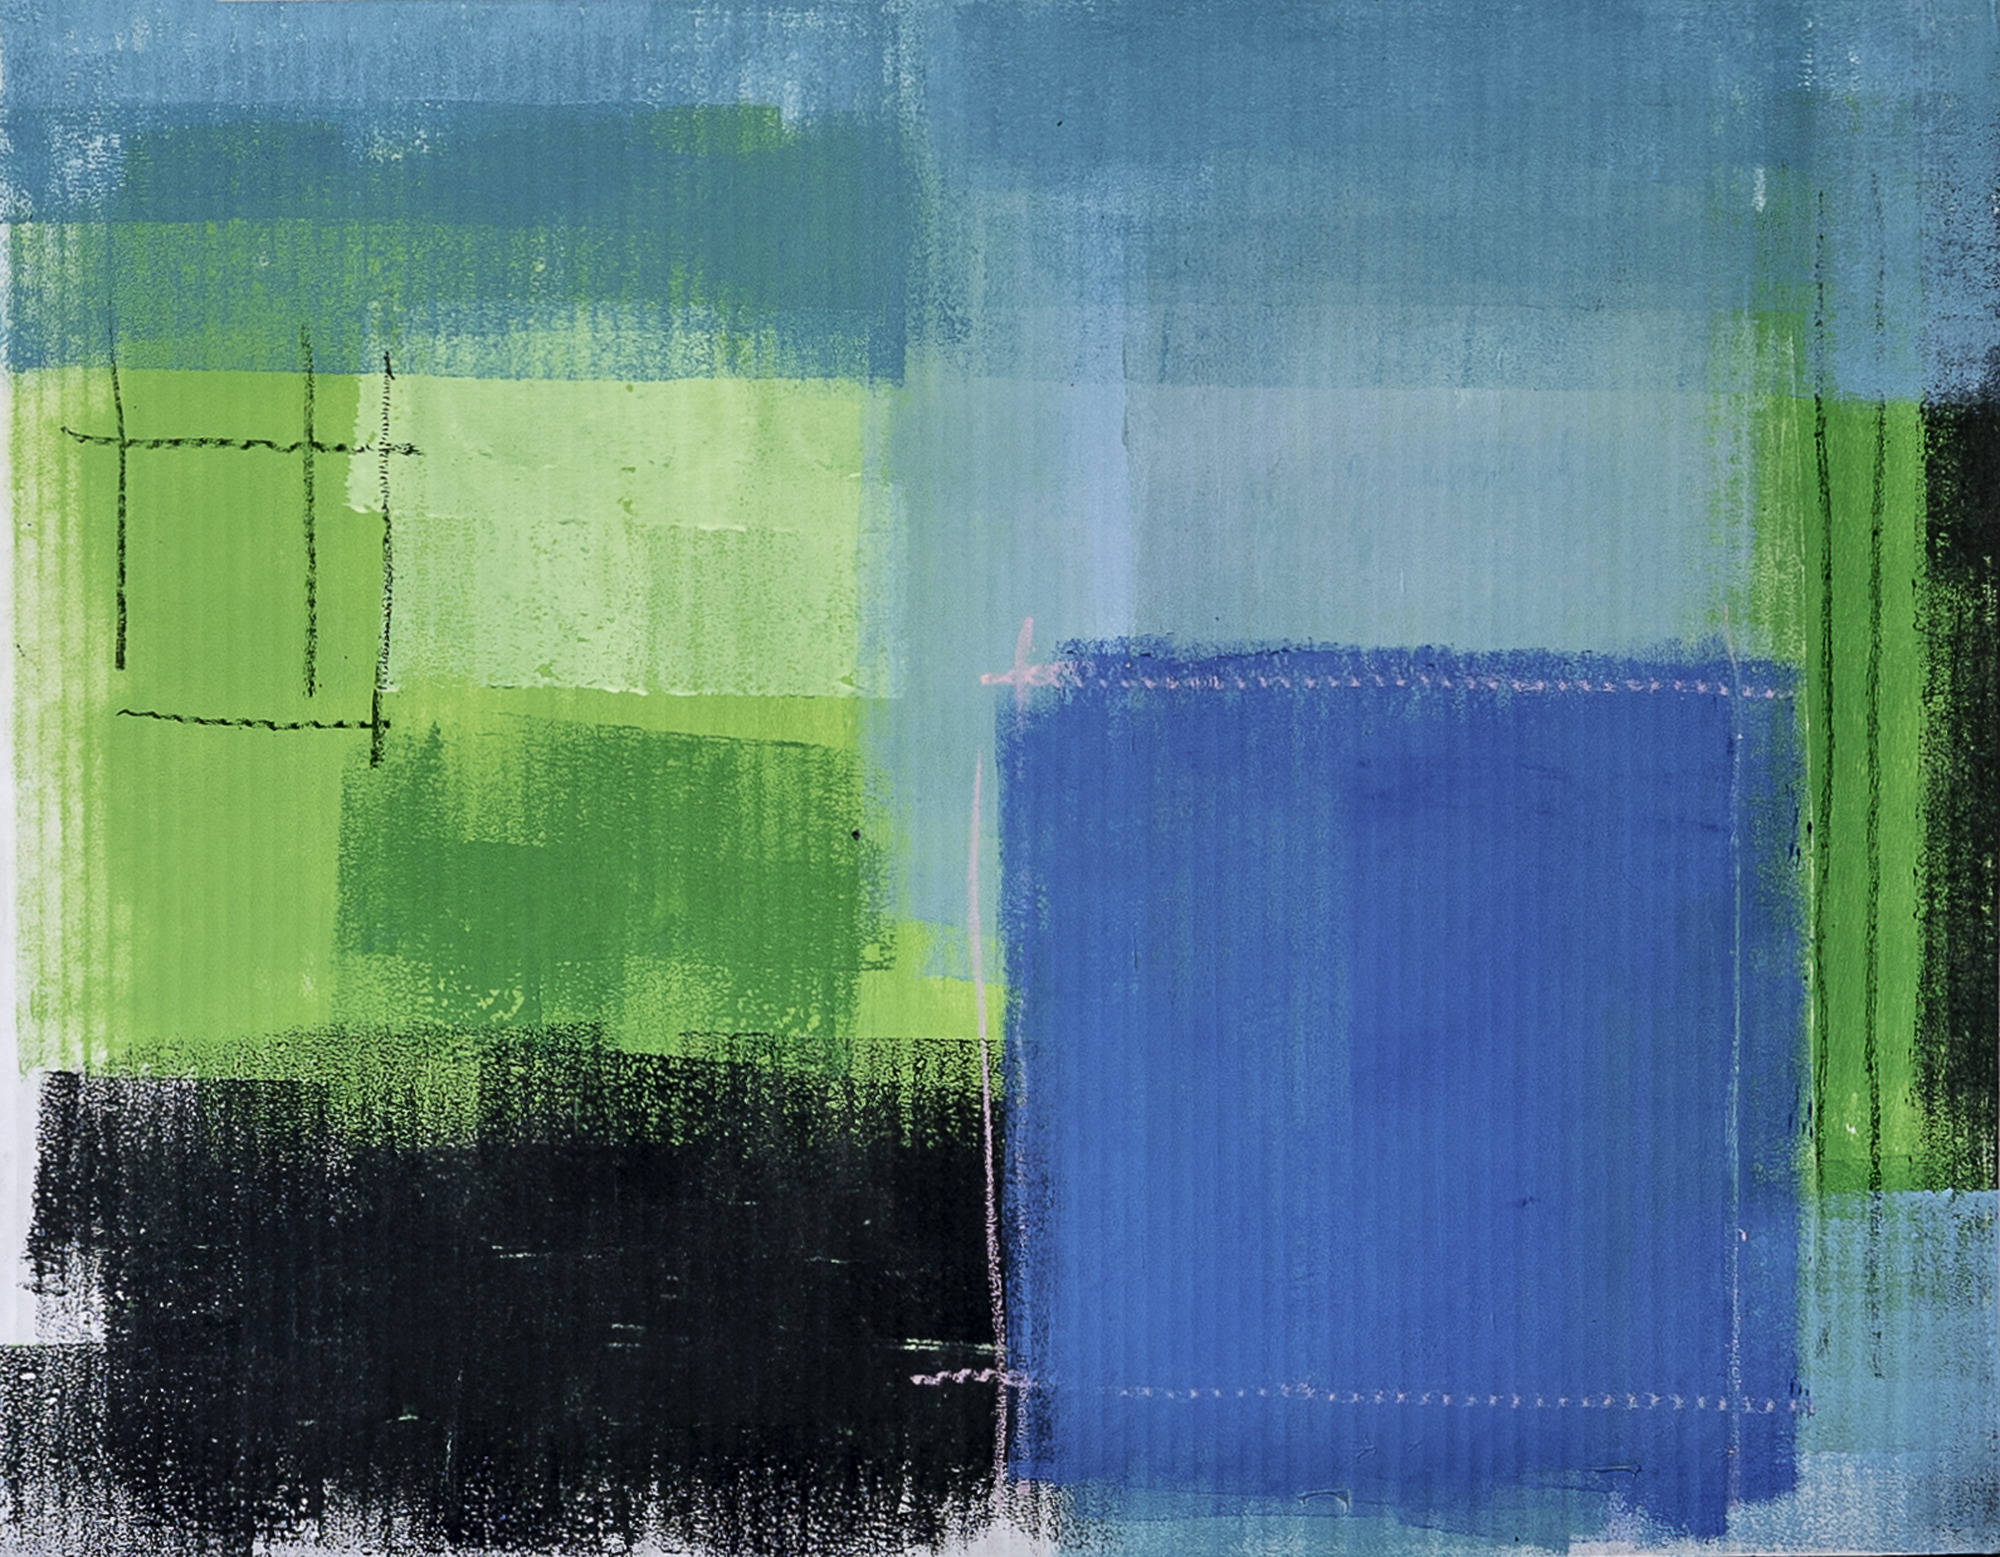 """""""Memoryscapes: Blurry Lines III No. 15"""""""